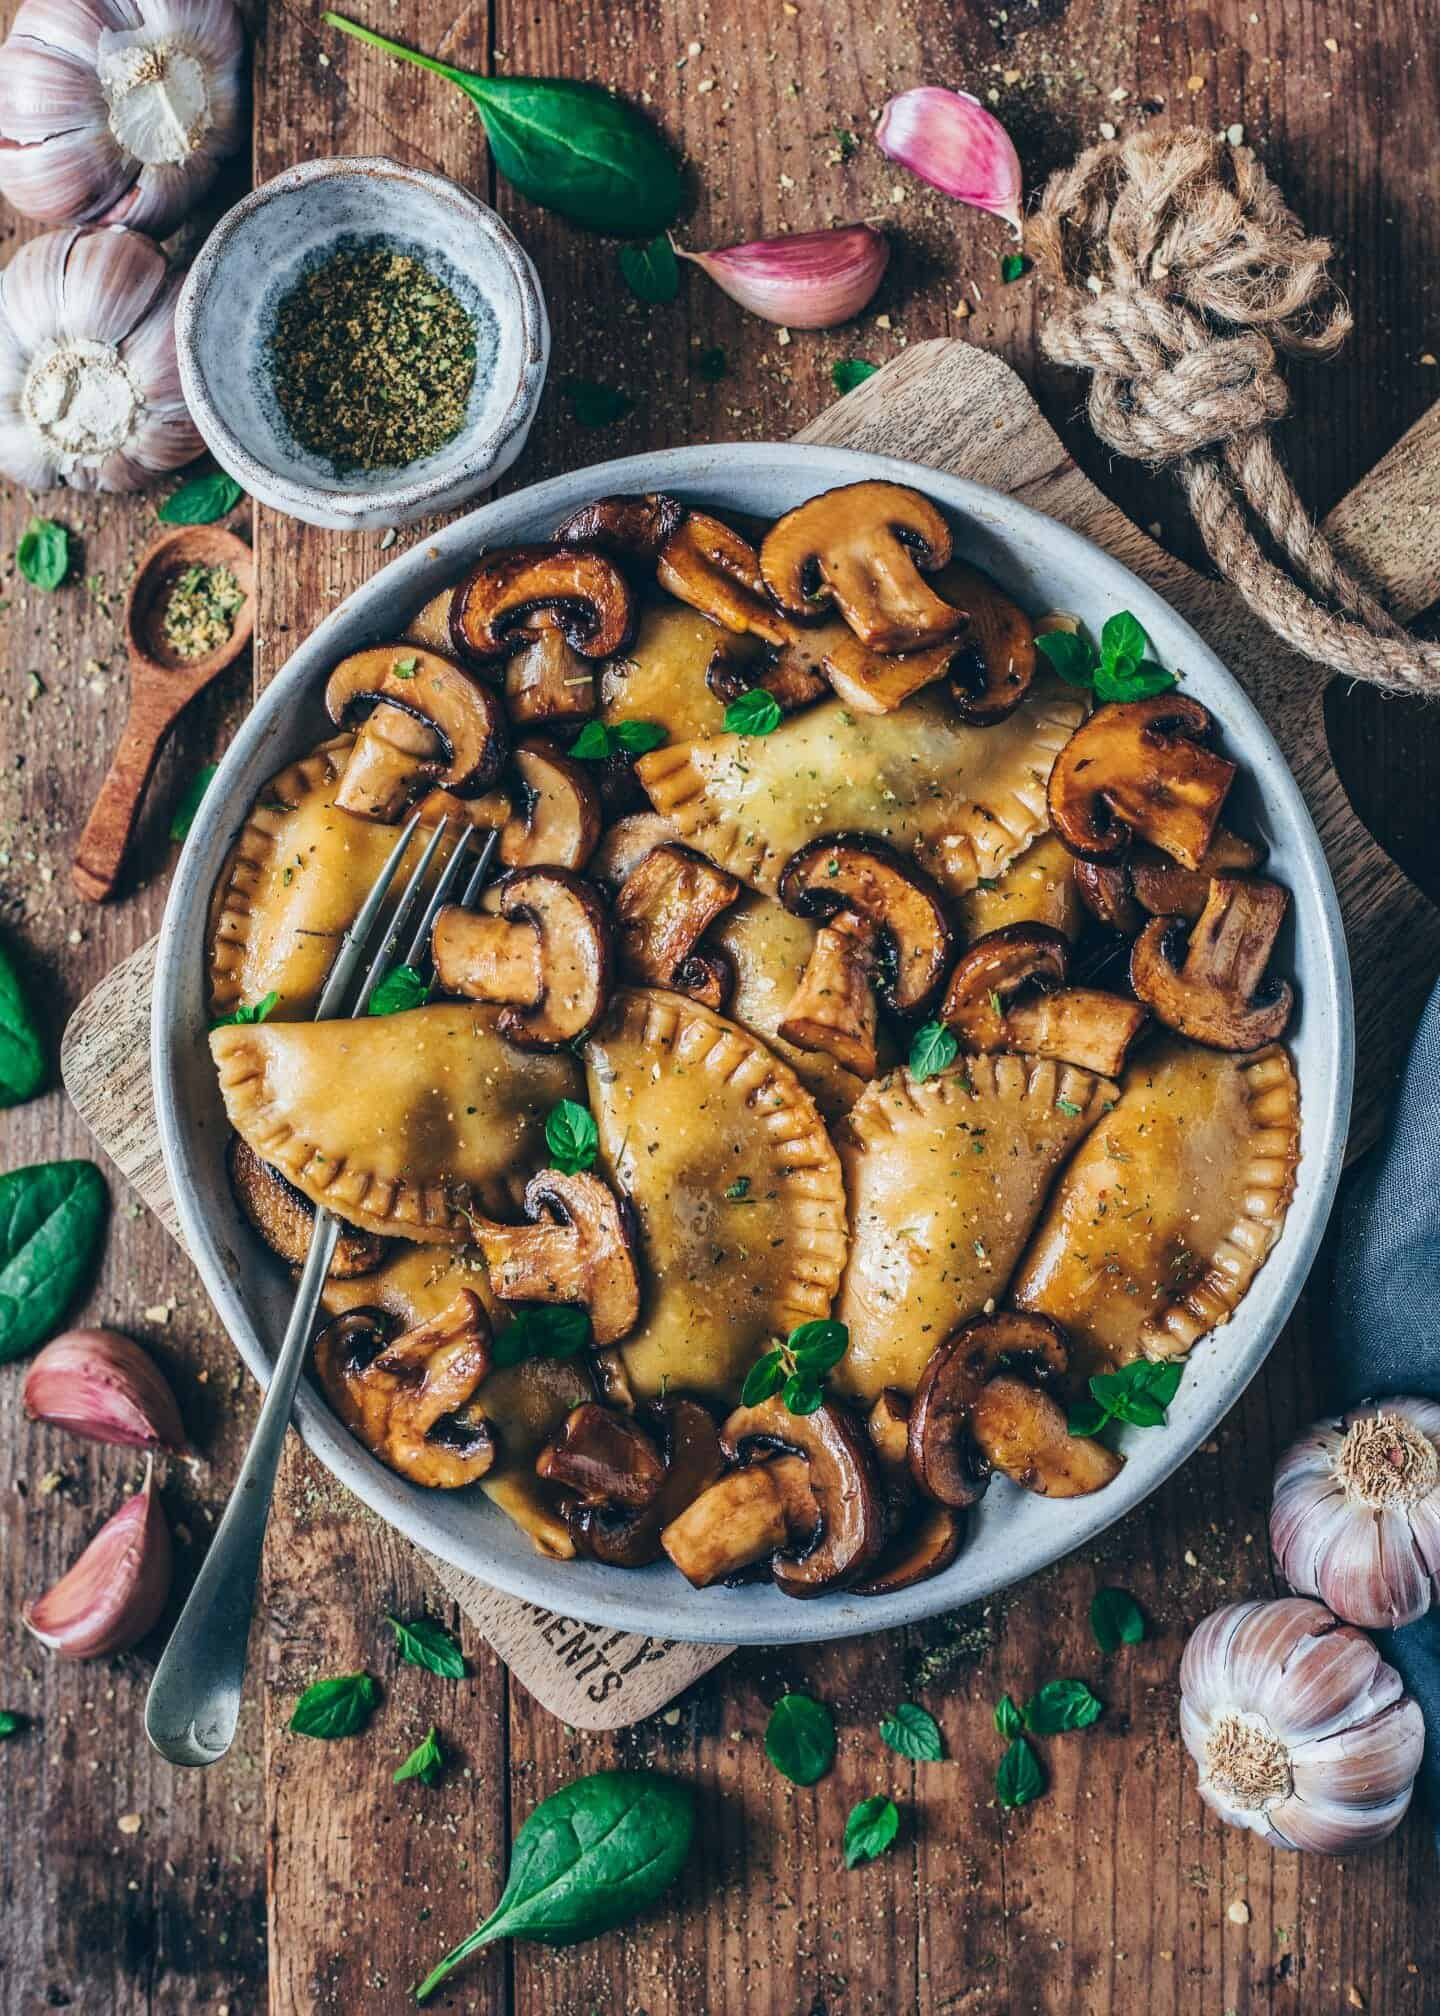 These homemade vegan spinach ravioli with fried mushrooms is the ultimate comfort food. It's a simple recipe that is delicious and healthy.